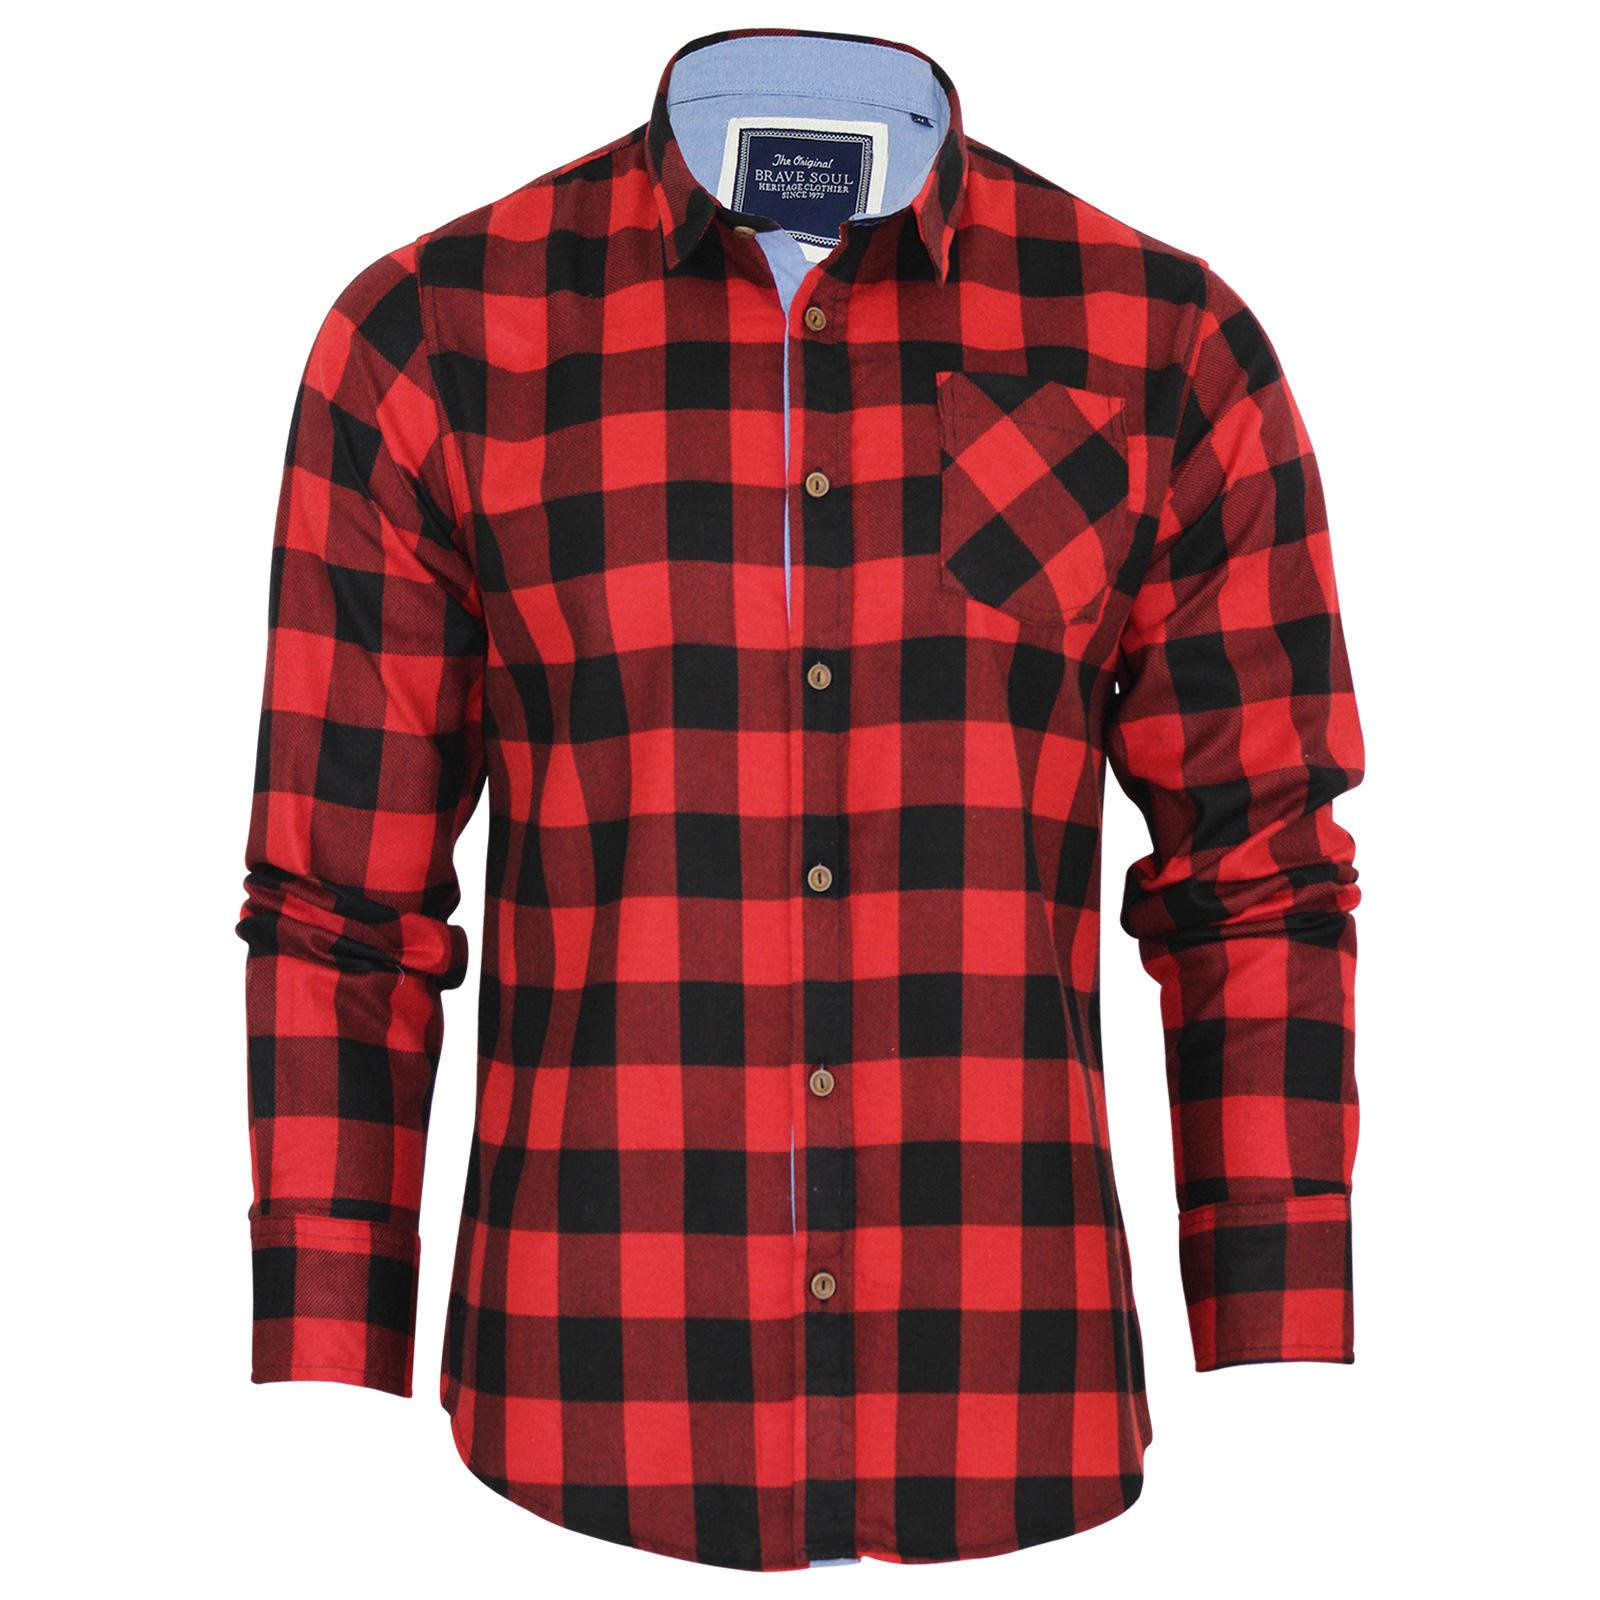 Brave-Soul-Mens-Check-Shirt-Flannel-Brushed-Cotton-Long-Sleeve-Casual-Top thumbnail 43